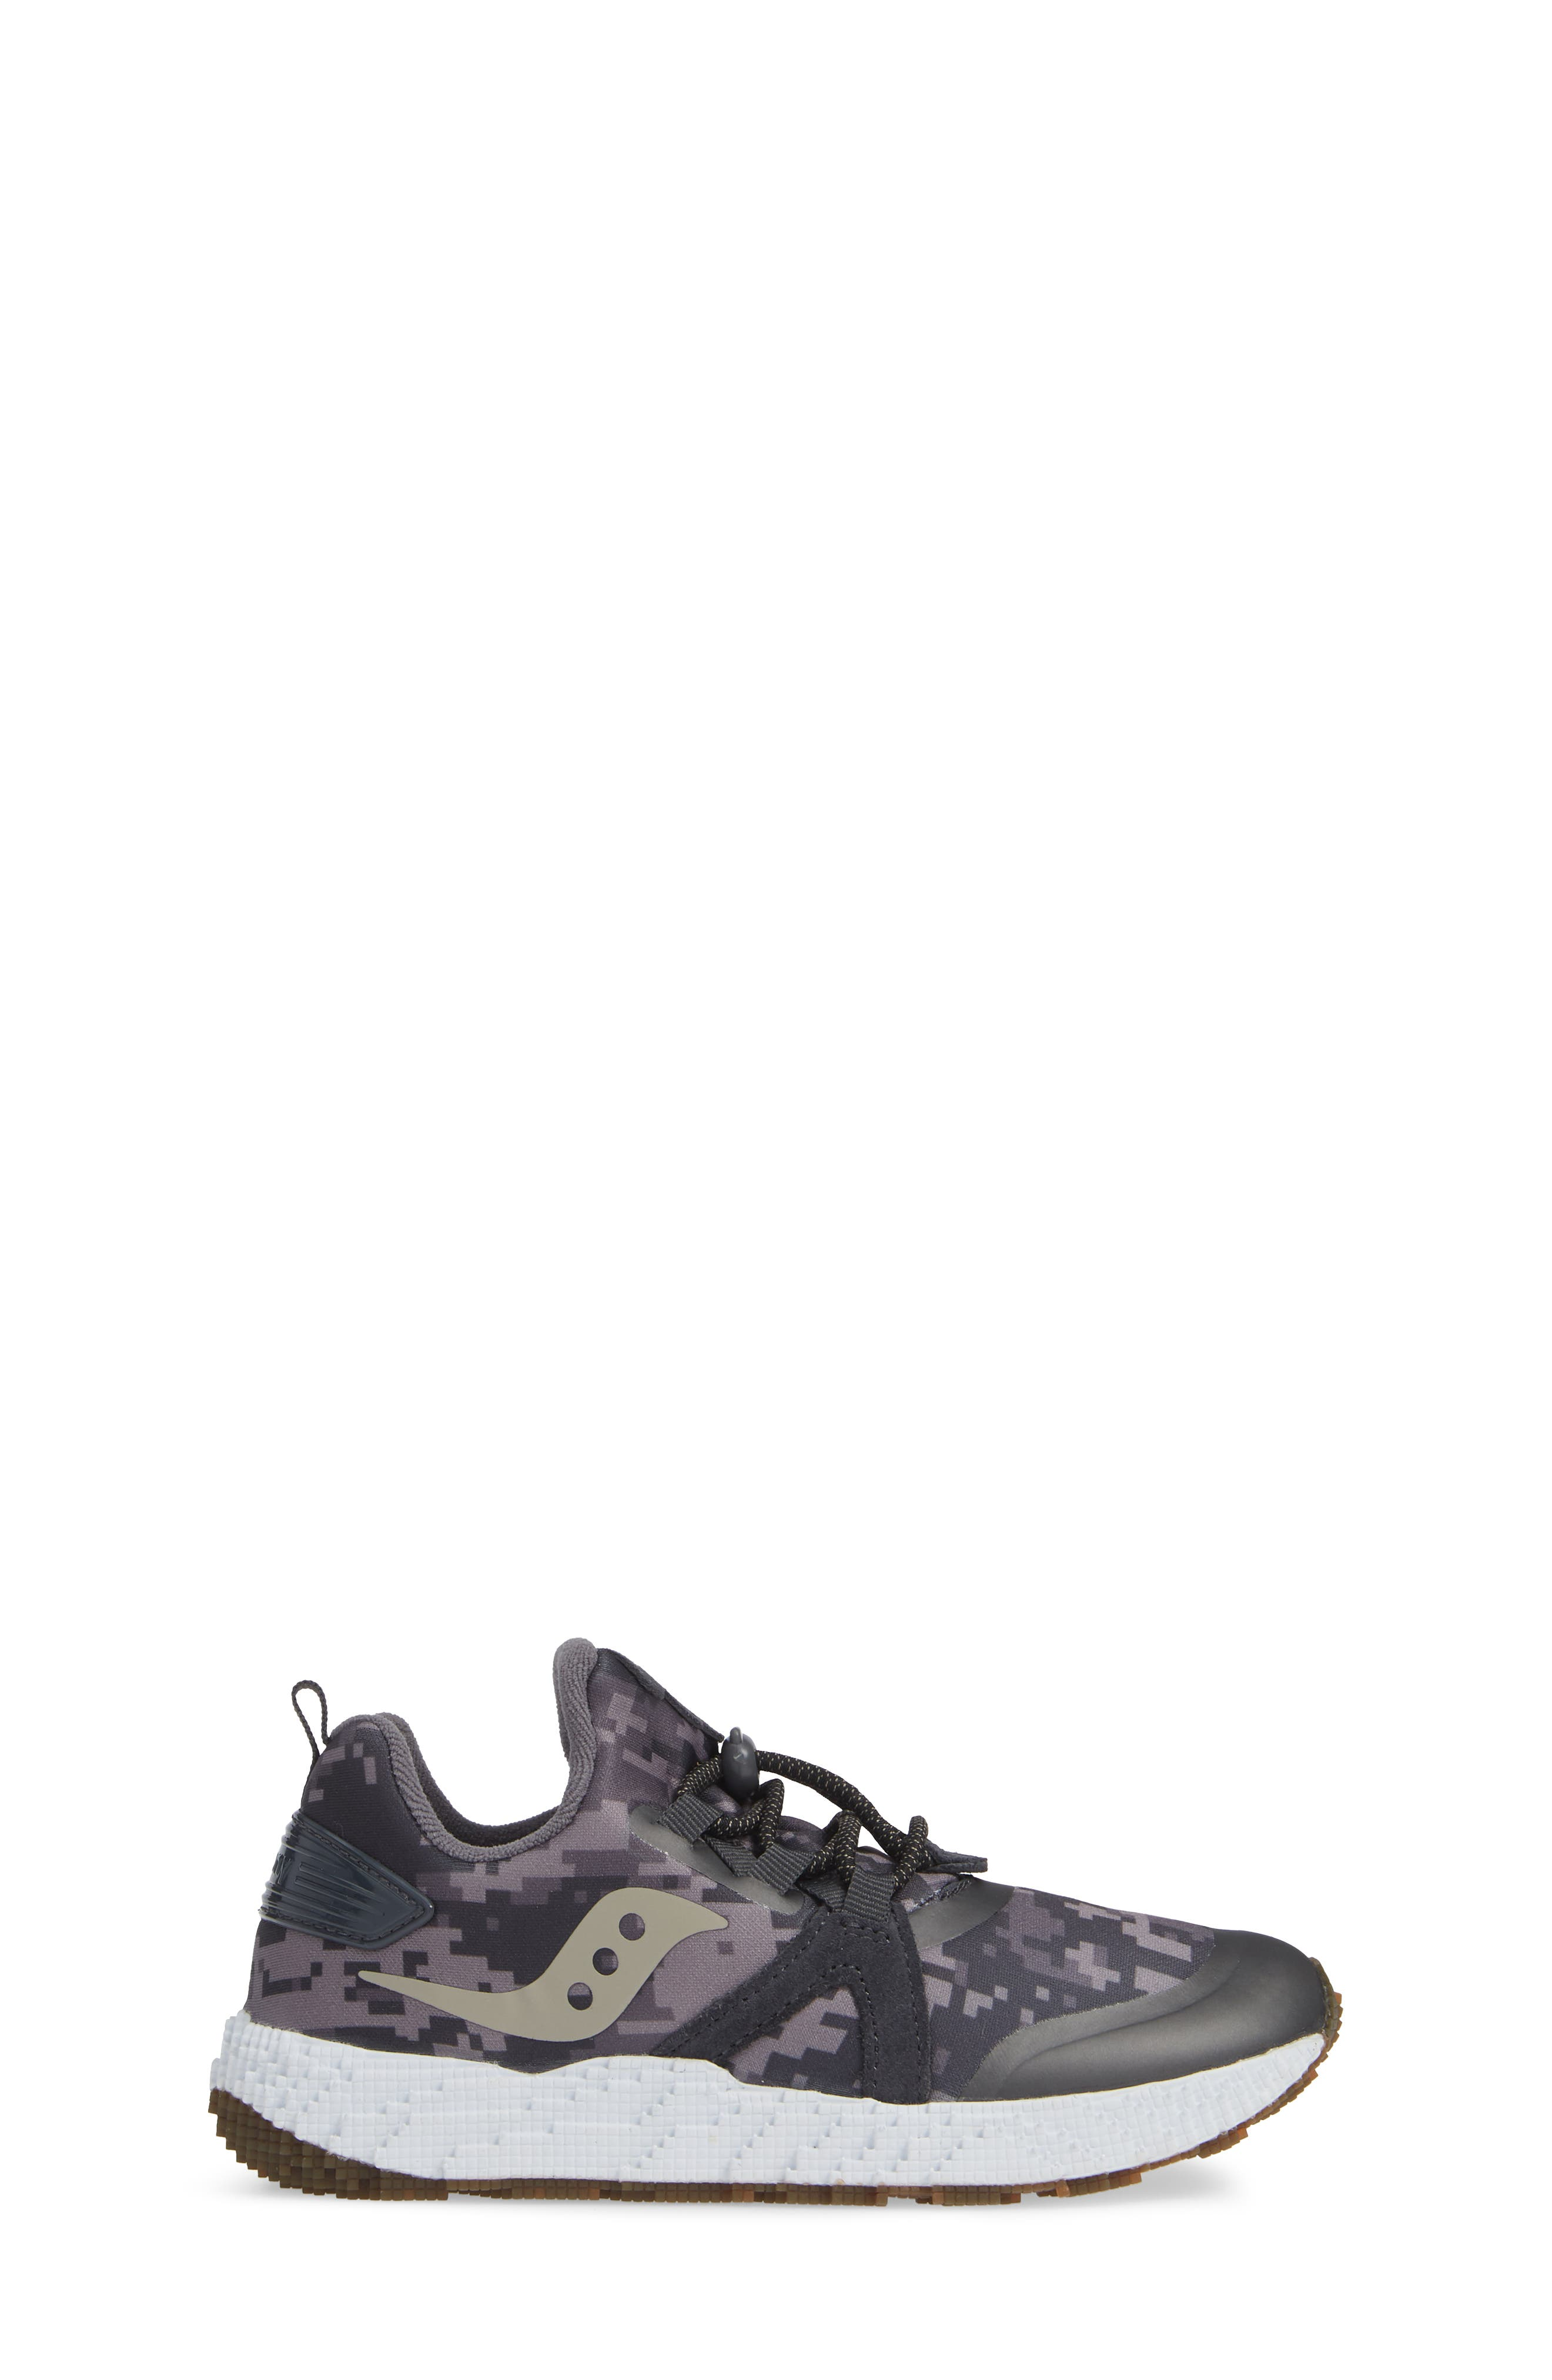 SAUCONY, Voxel 9000 Sneaker, Alternate thumbnail 3, color, GREY LEATHER/ MESH